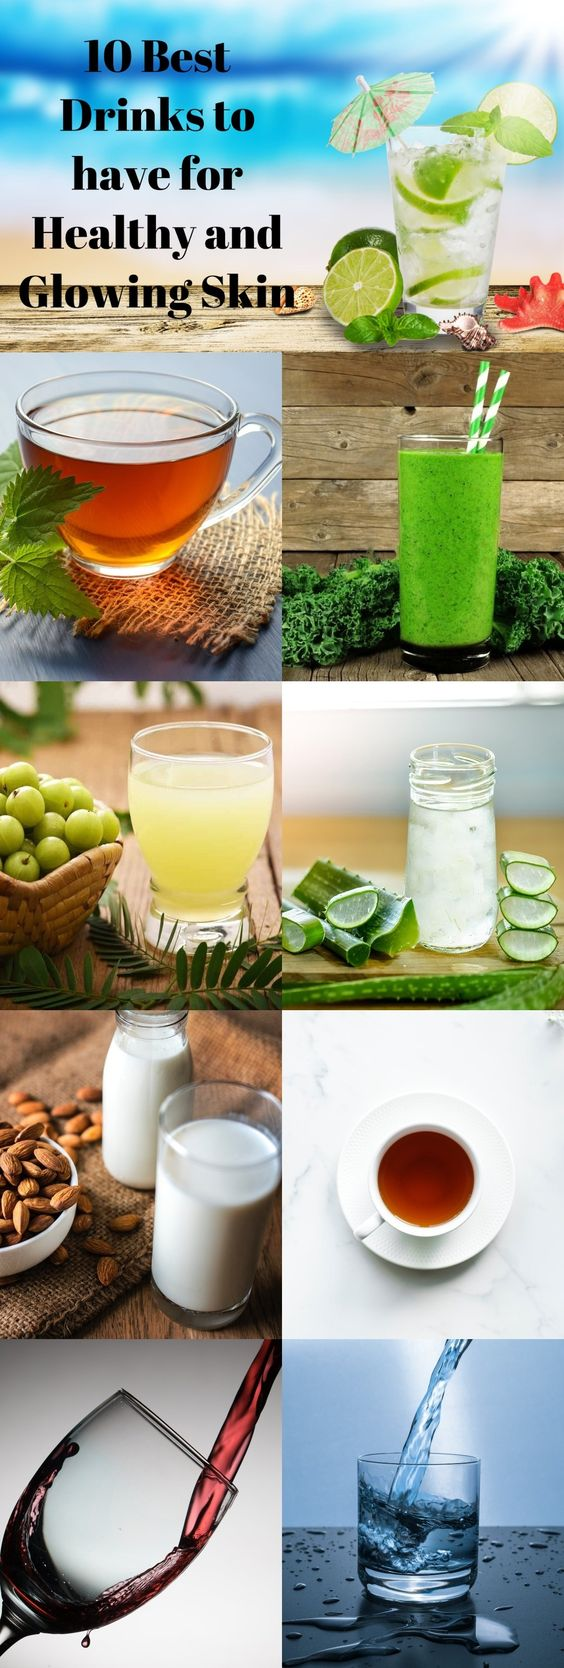 10 Best Drinks to have for Healthy and Glowing Skin....